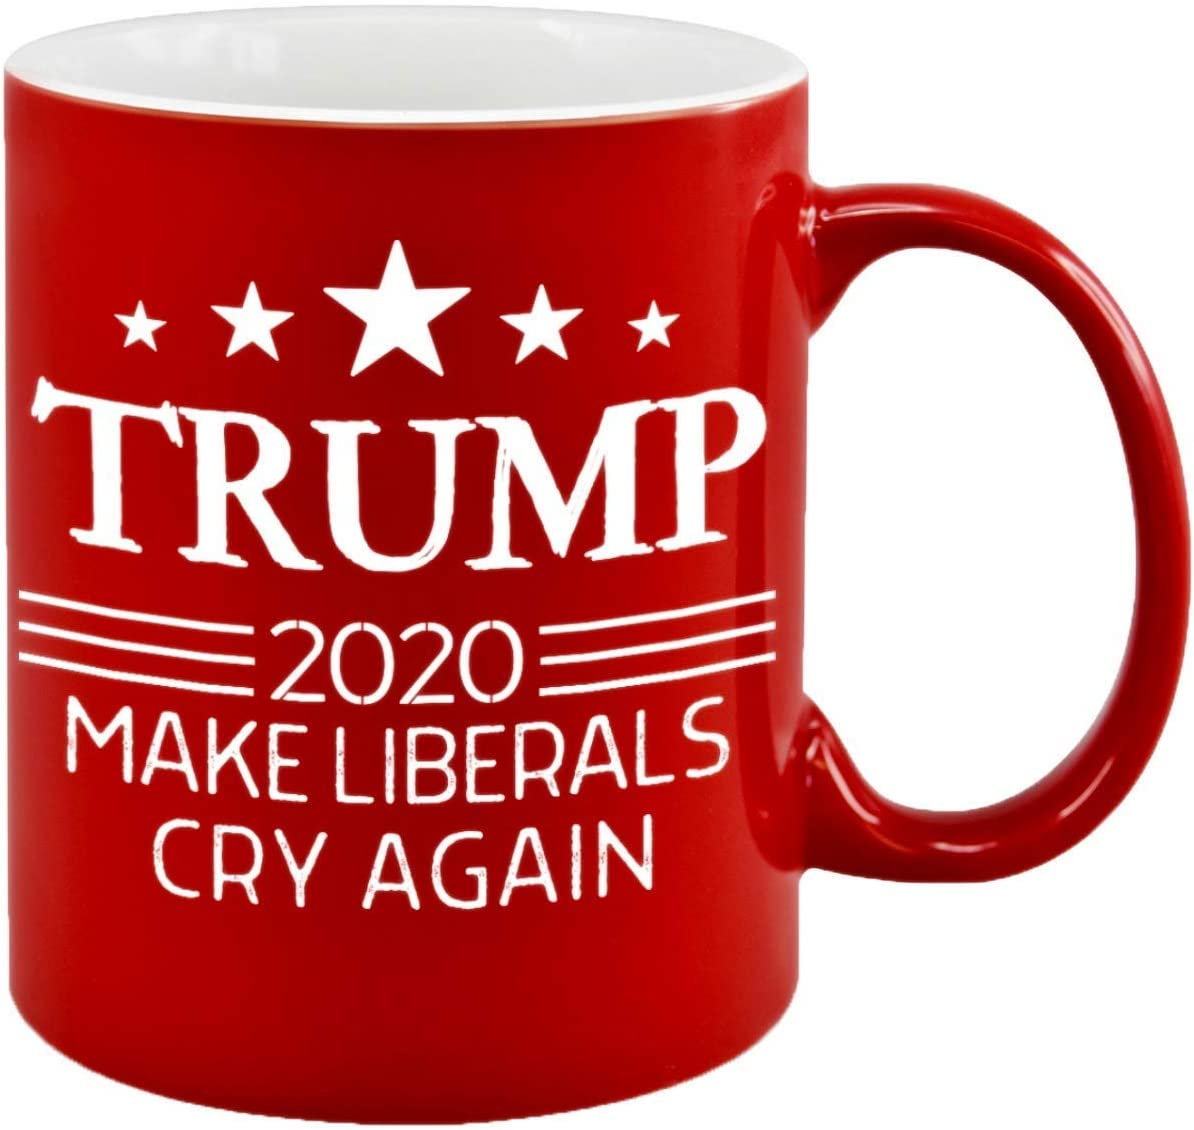 Amazon Com Make Liberals Cry Again Donald Trump Coffee Mugs Re Elect 2020 Novelty Tea Cup Potus Maga Funny Gag Christmas Gift Ideas Republican Conservative Patriotic American Birthday Present For Him Her Dad Mom